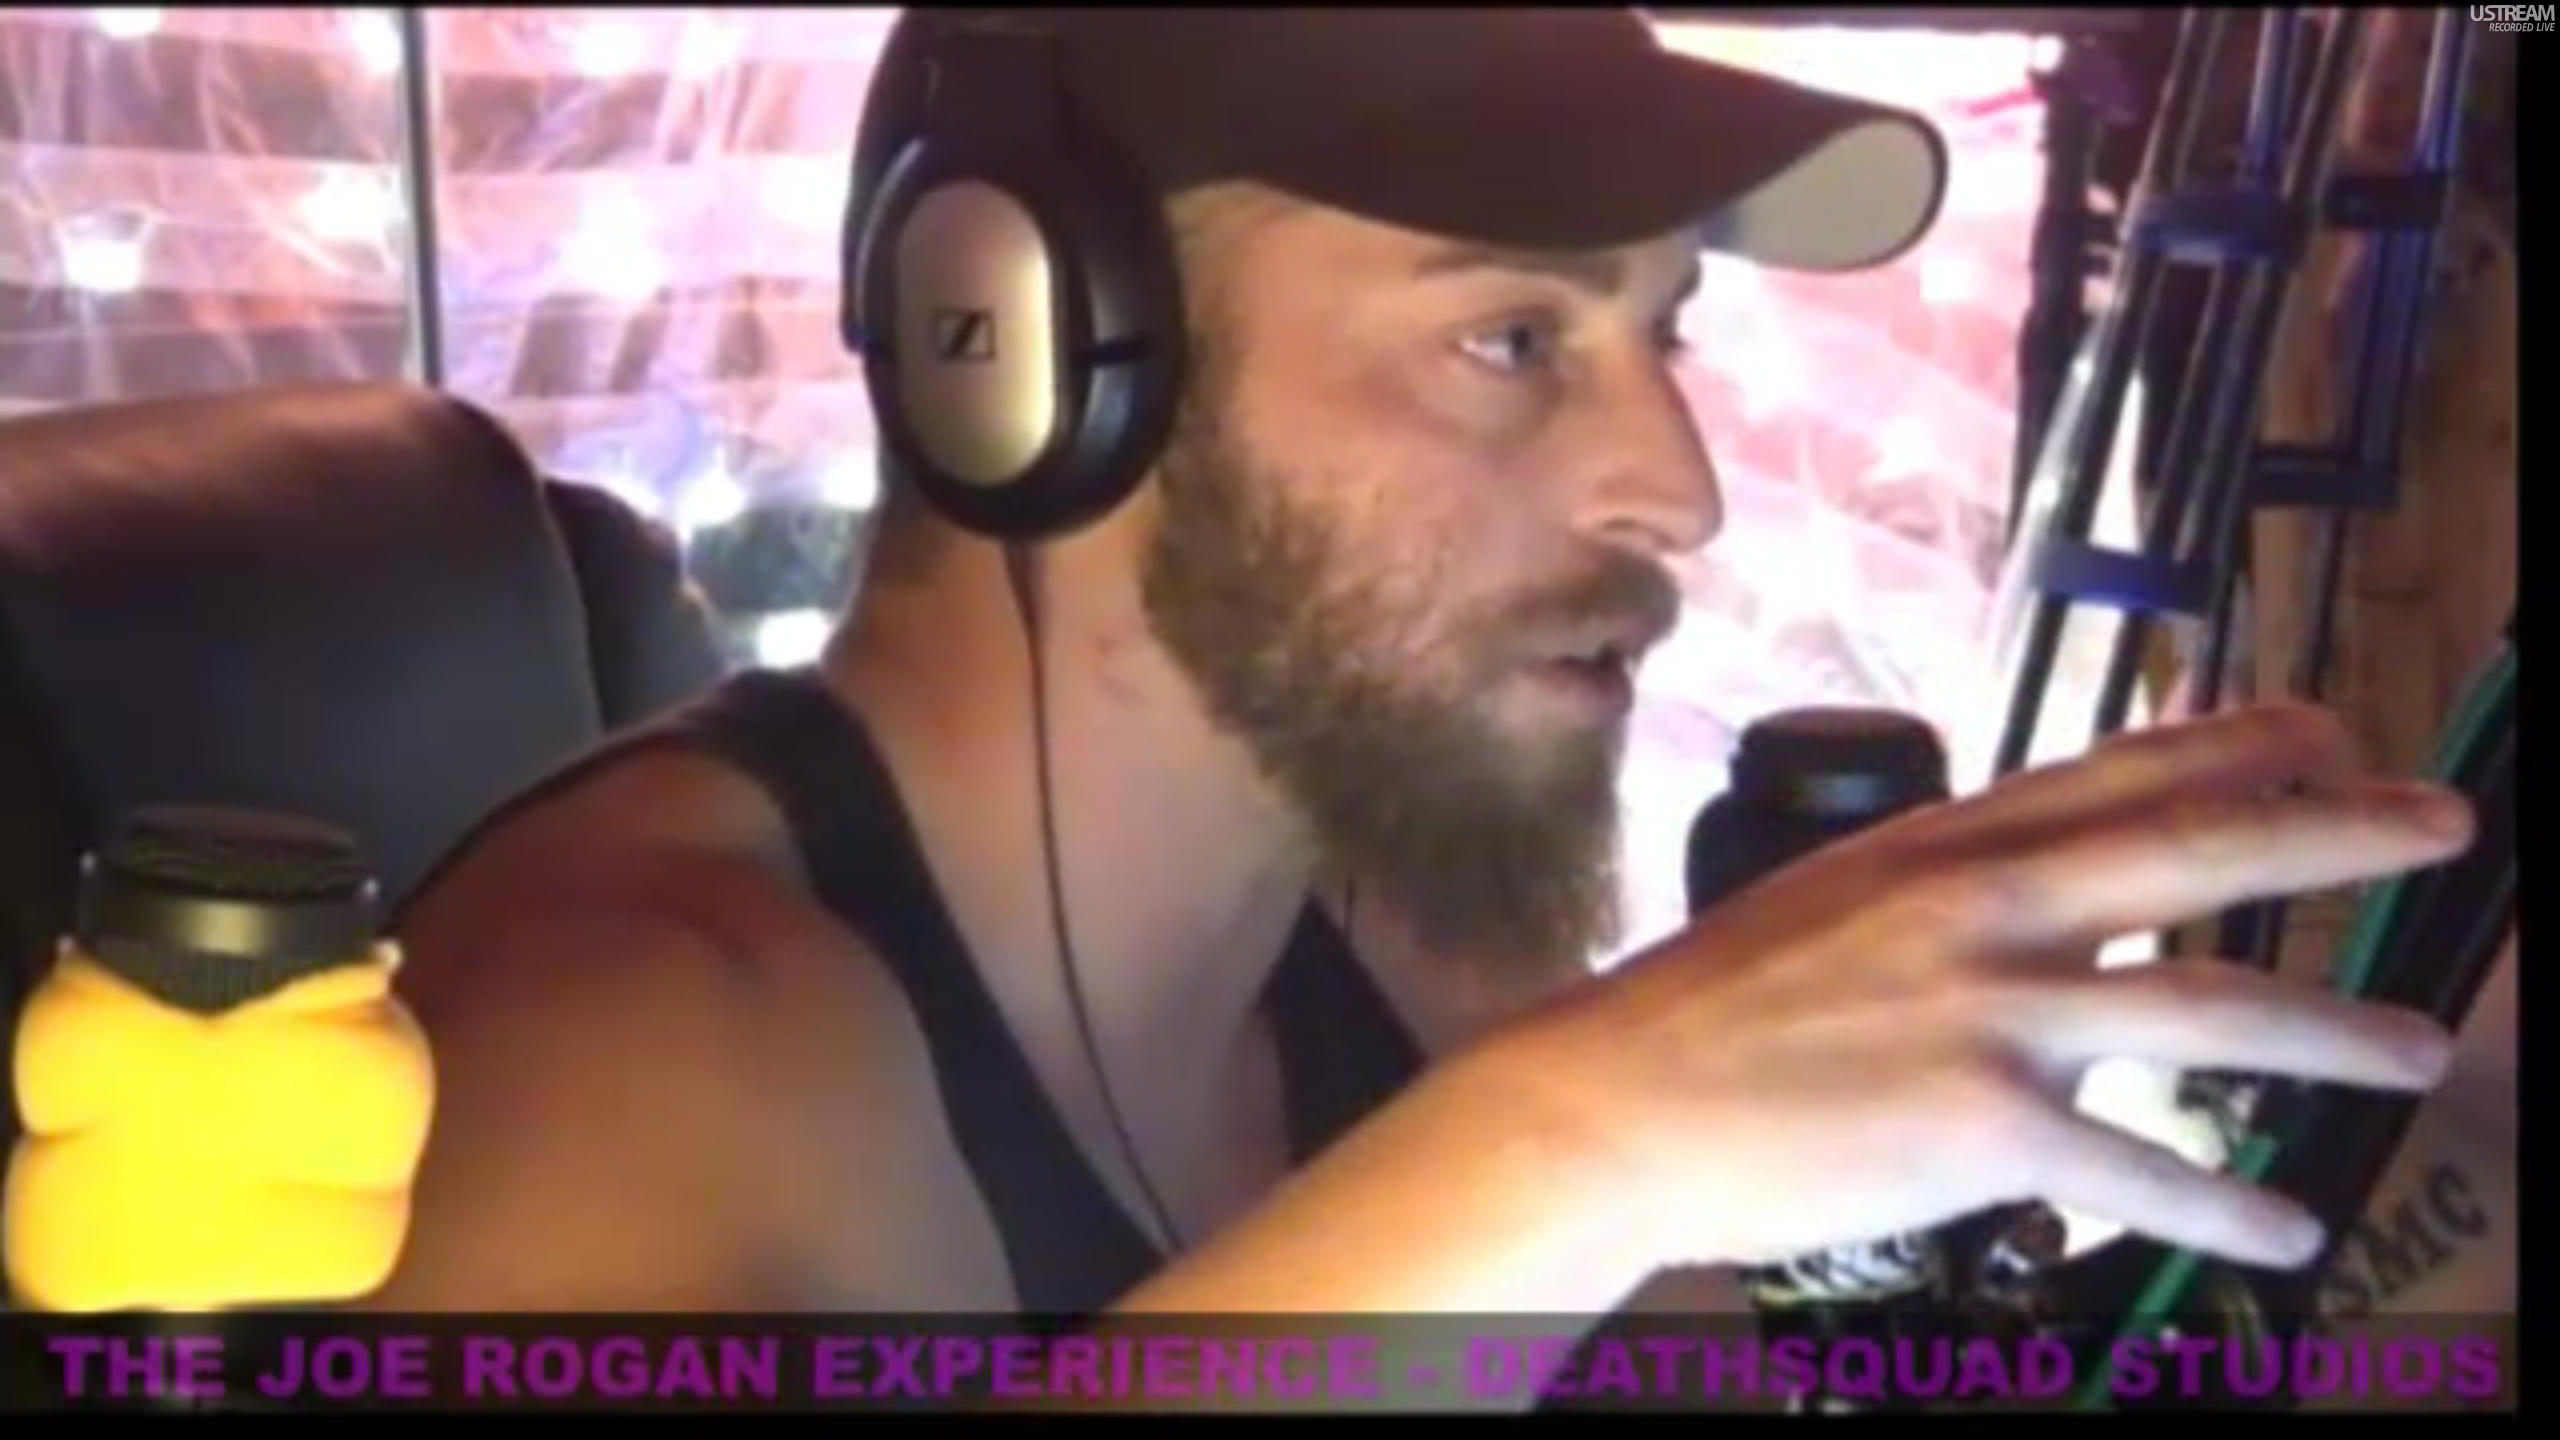 The Joe Rogan Experience #239 - Adam Kokesh, Brian Redban